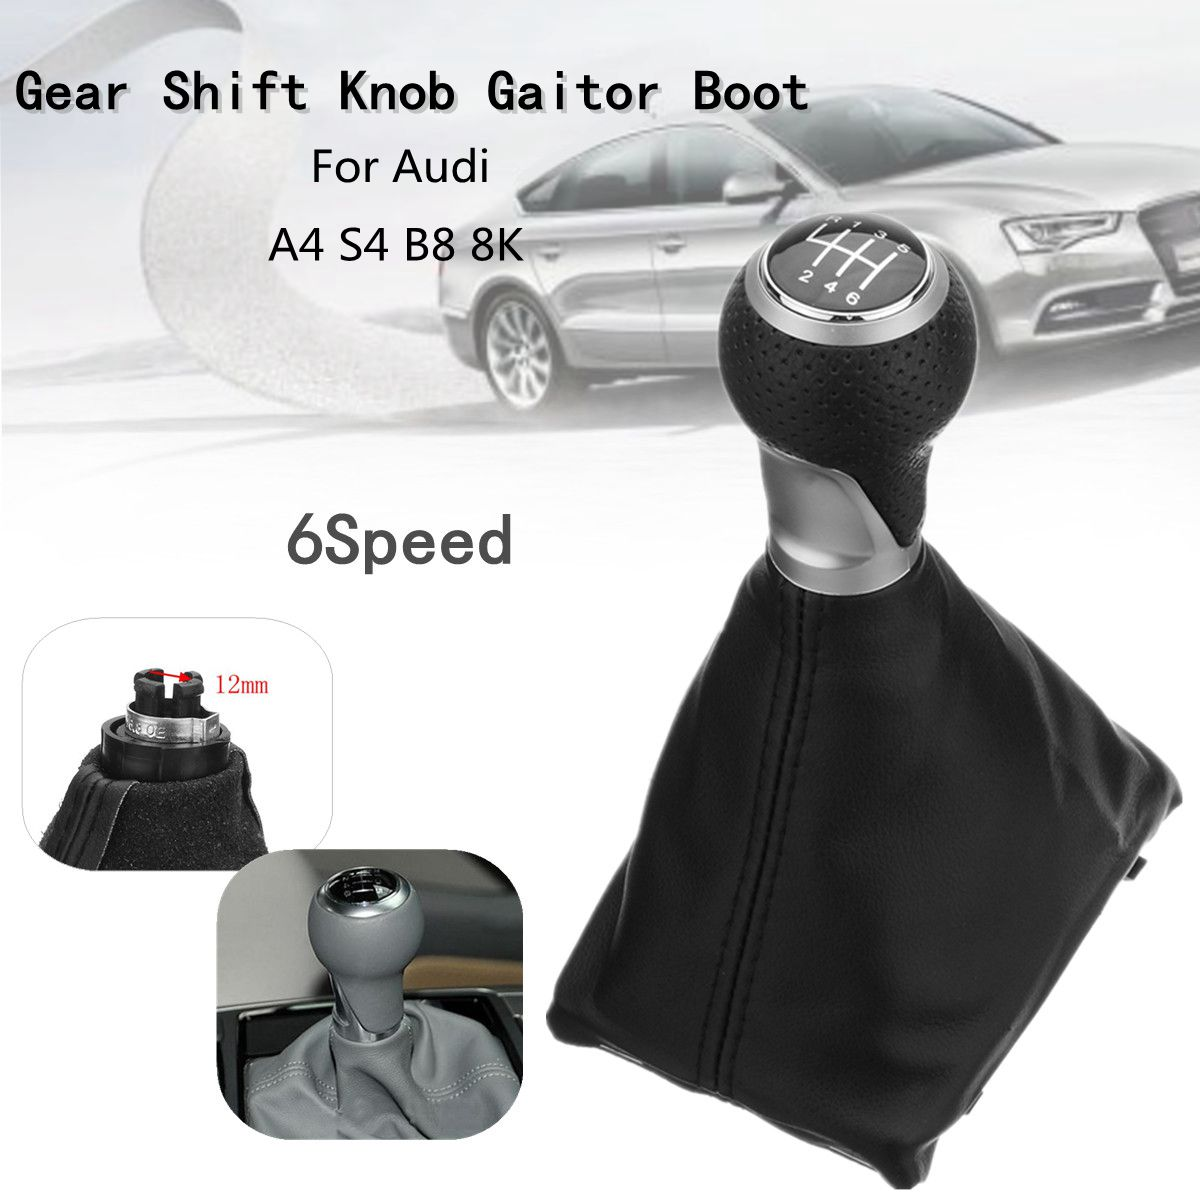 6 Speed Car MT Gear Shift Knob Gaiter Boot Cover For <font><b>Audi</b></font> <font><b>A4</b></font> S4 B8 8K A5 8T Q5 8R S-Line 2007 2008 2009 2010 <font><b>2011</b></font> 2012 2013-2015 image